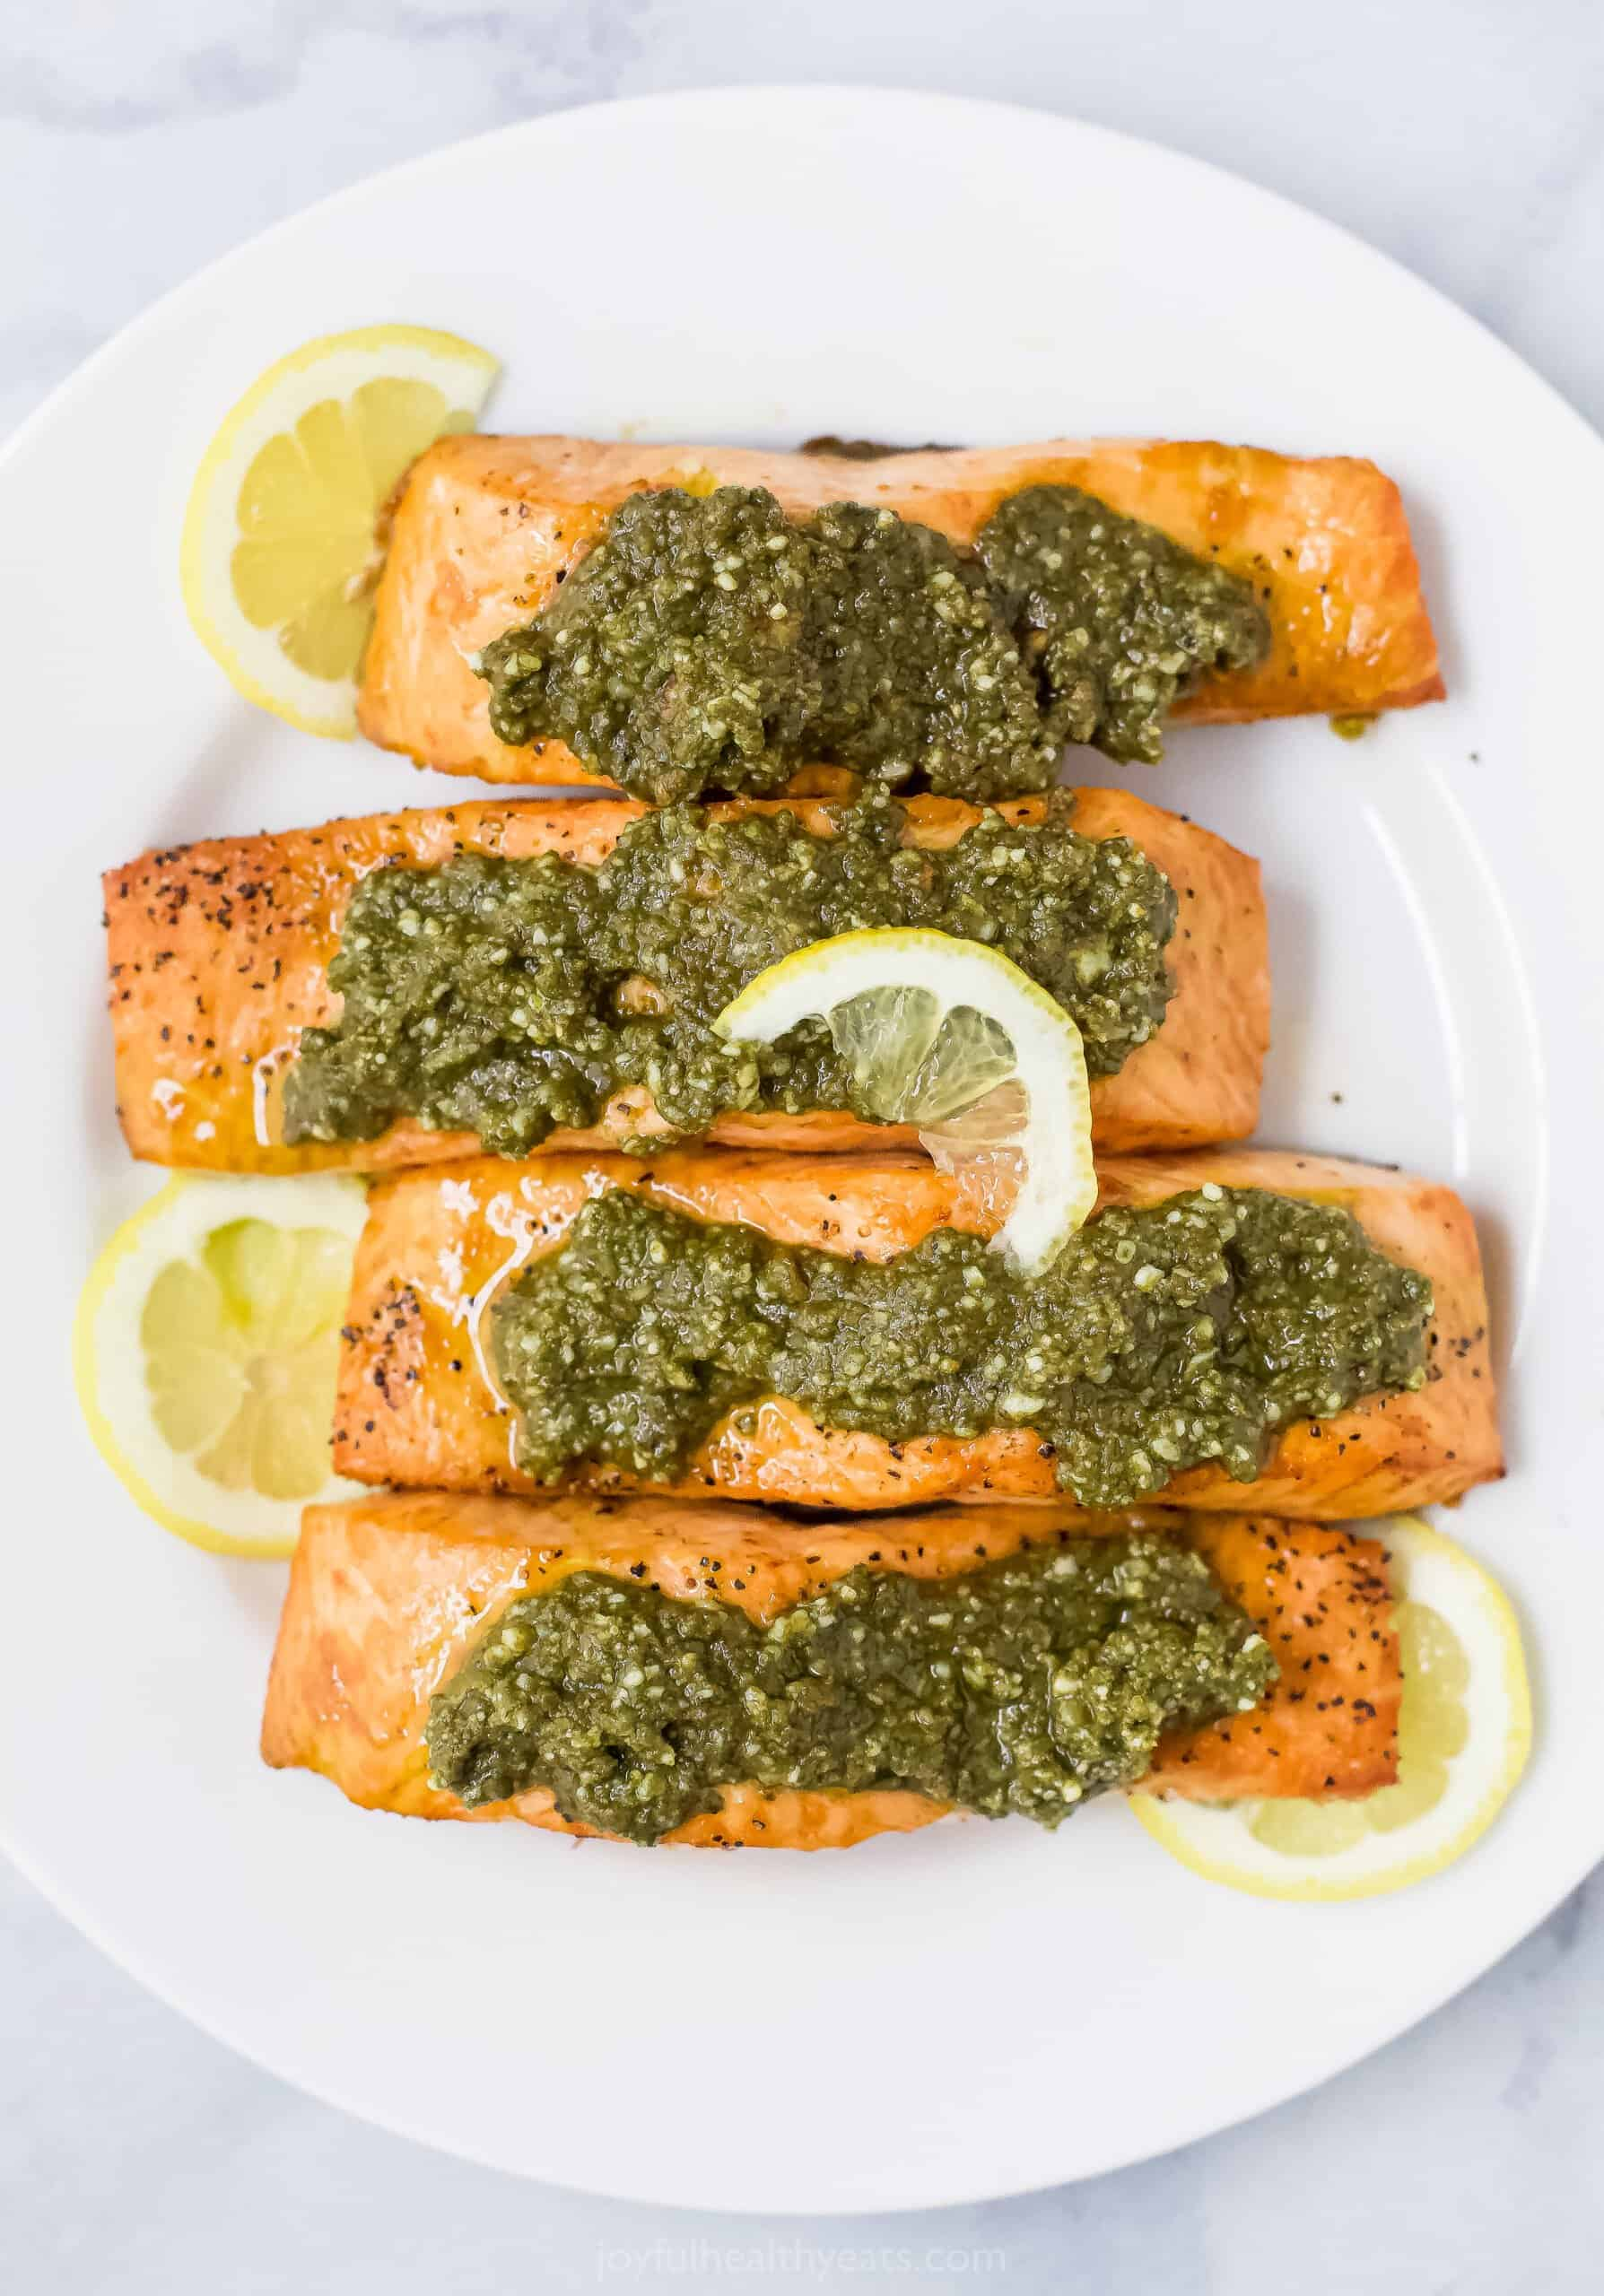 salmon filets on a plate topped with basil pesto